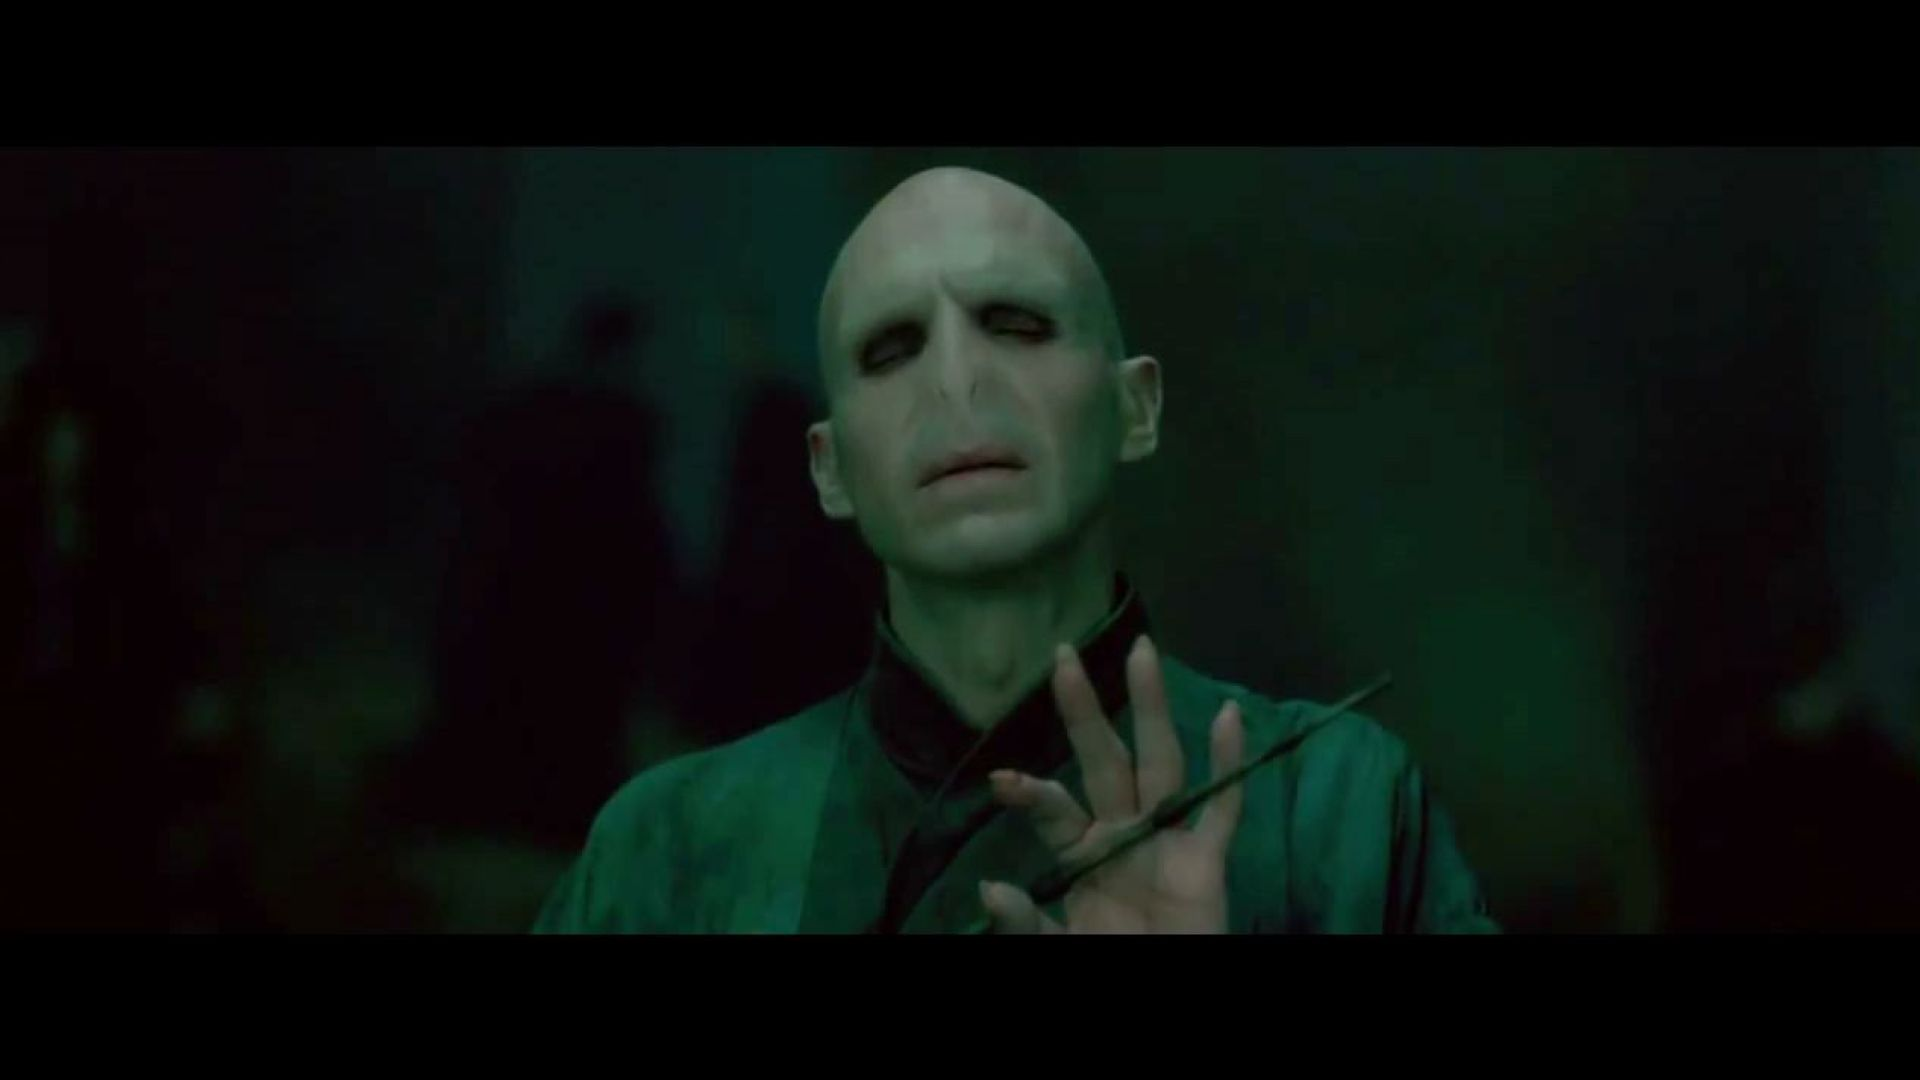 Harry Potter and Lord Voldemort, the final confrontation